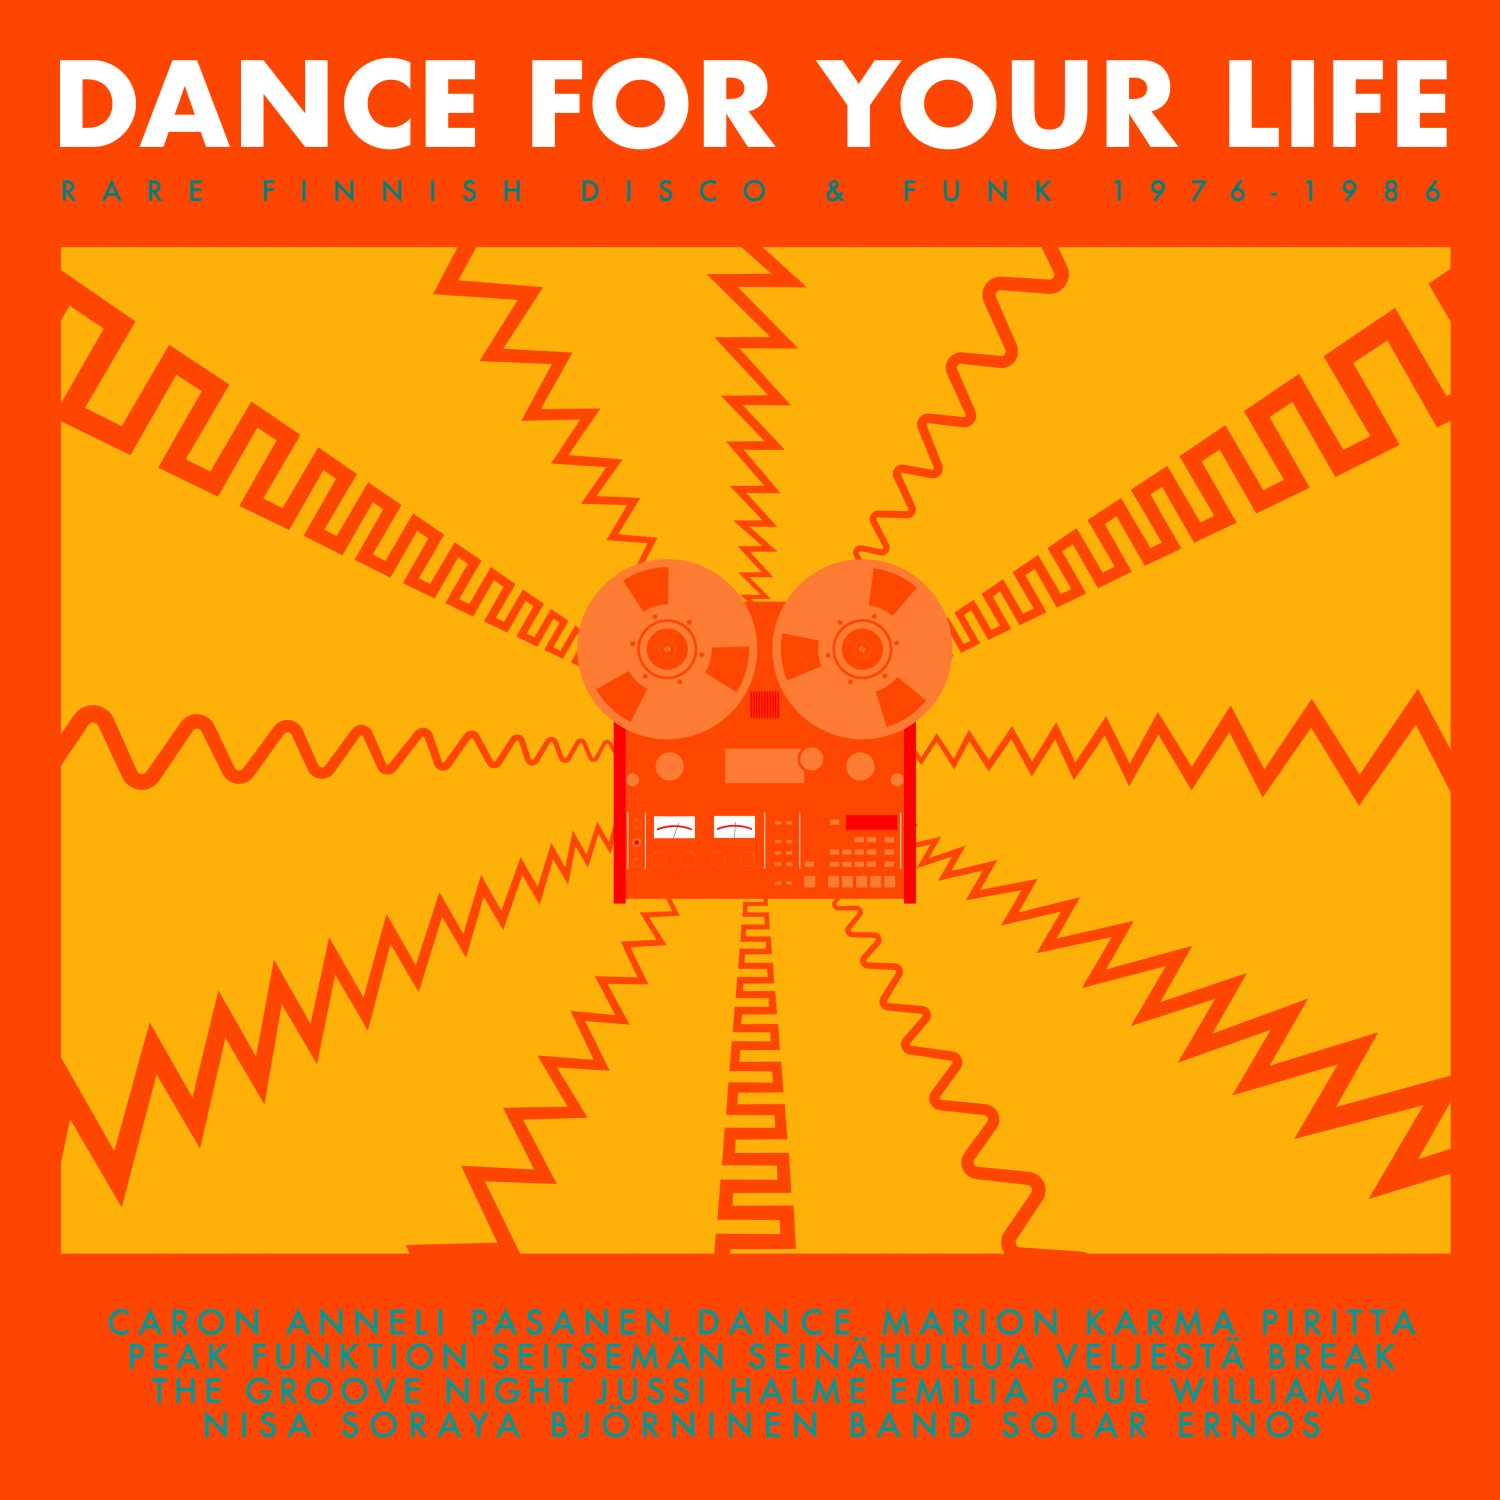 Dance For Your Life - Rare Finnish Funk & Disco 1976-1986